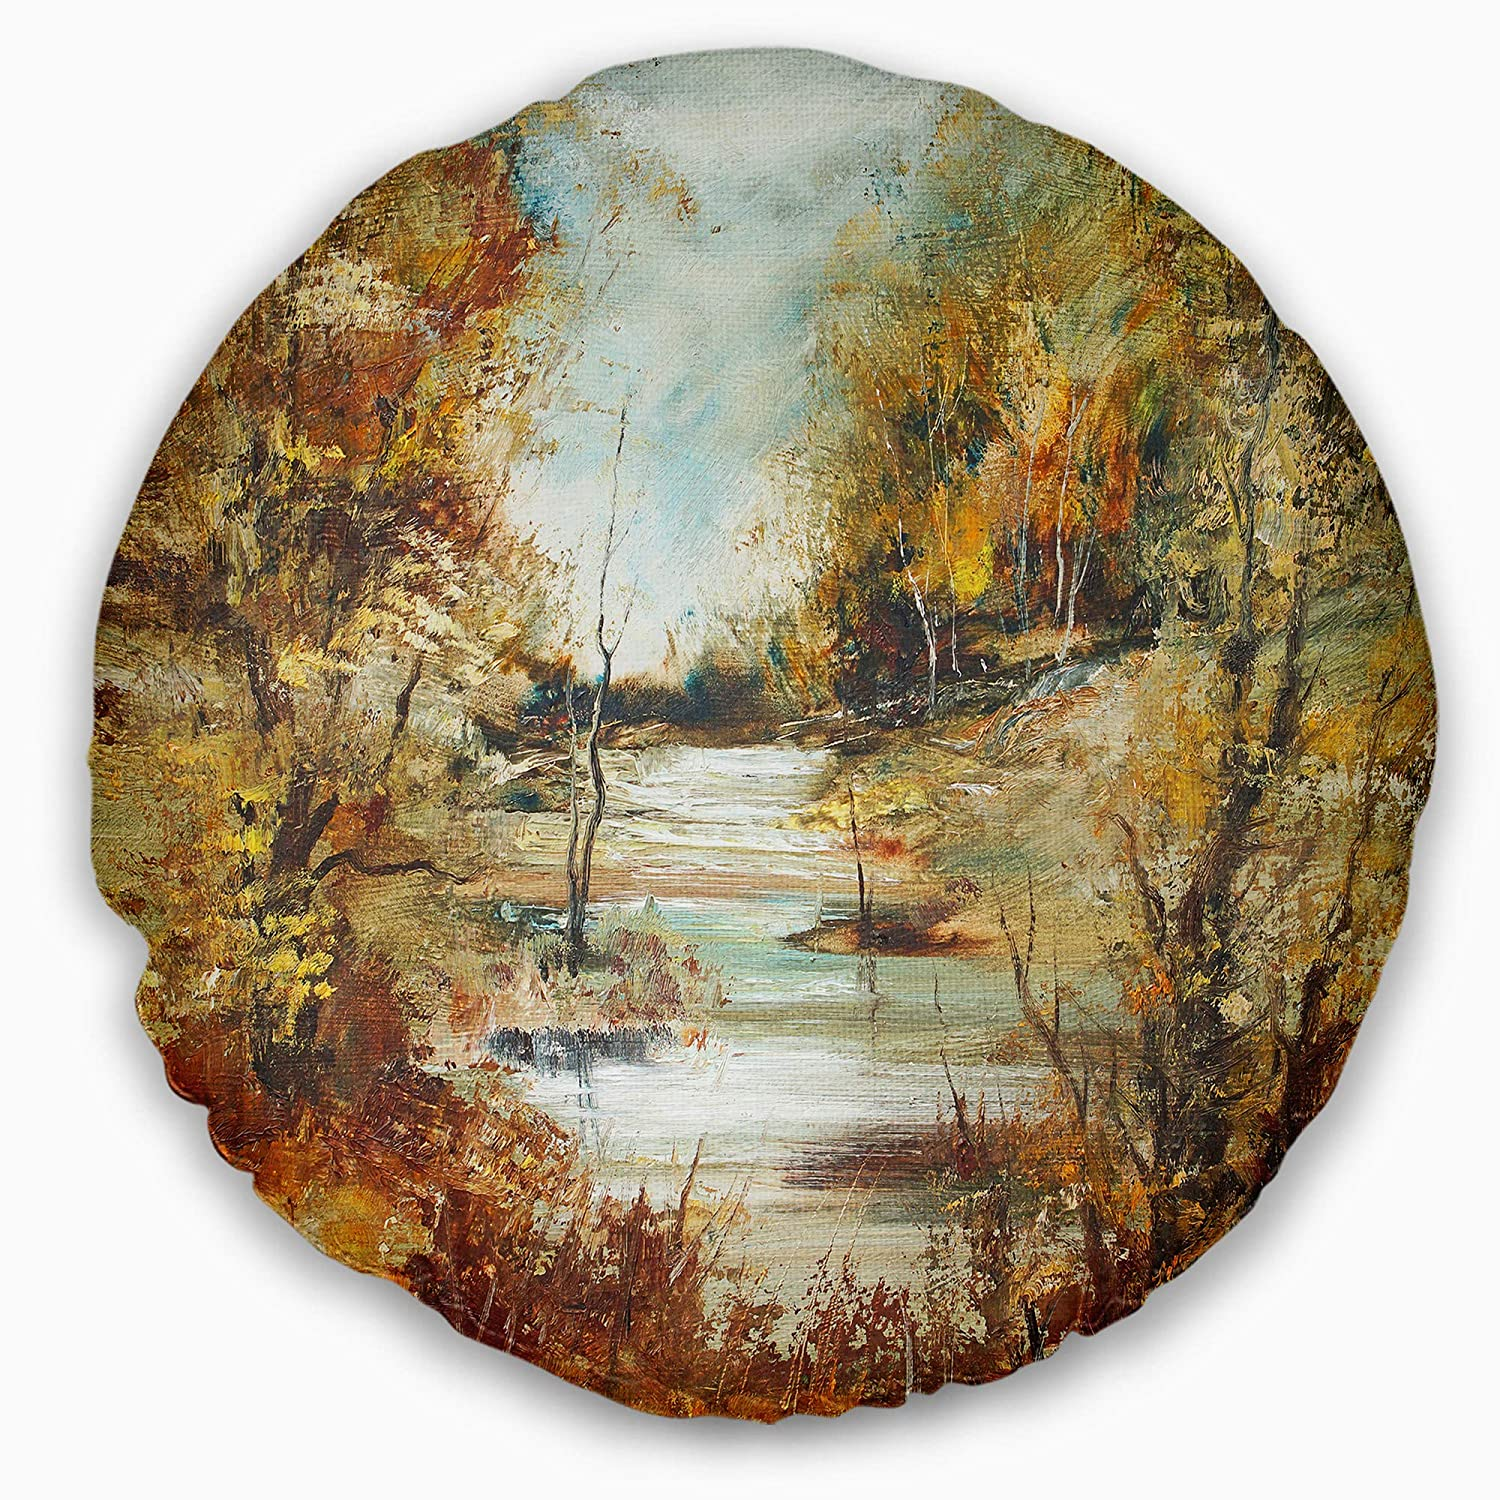 Insert Printed On Both Side Sofa Throw Pillow 20 Designart CU8518-20-20-C Brown River in Forest Landscape Painting Round Cushion Cover for Living Room